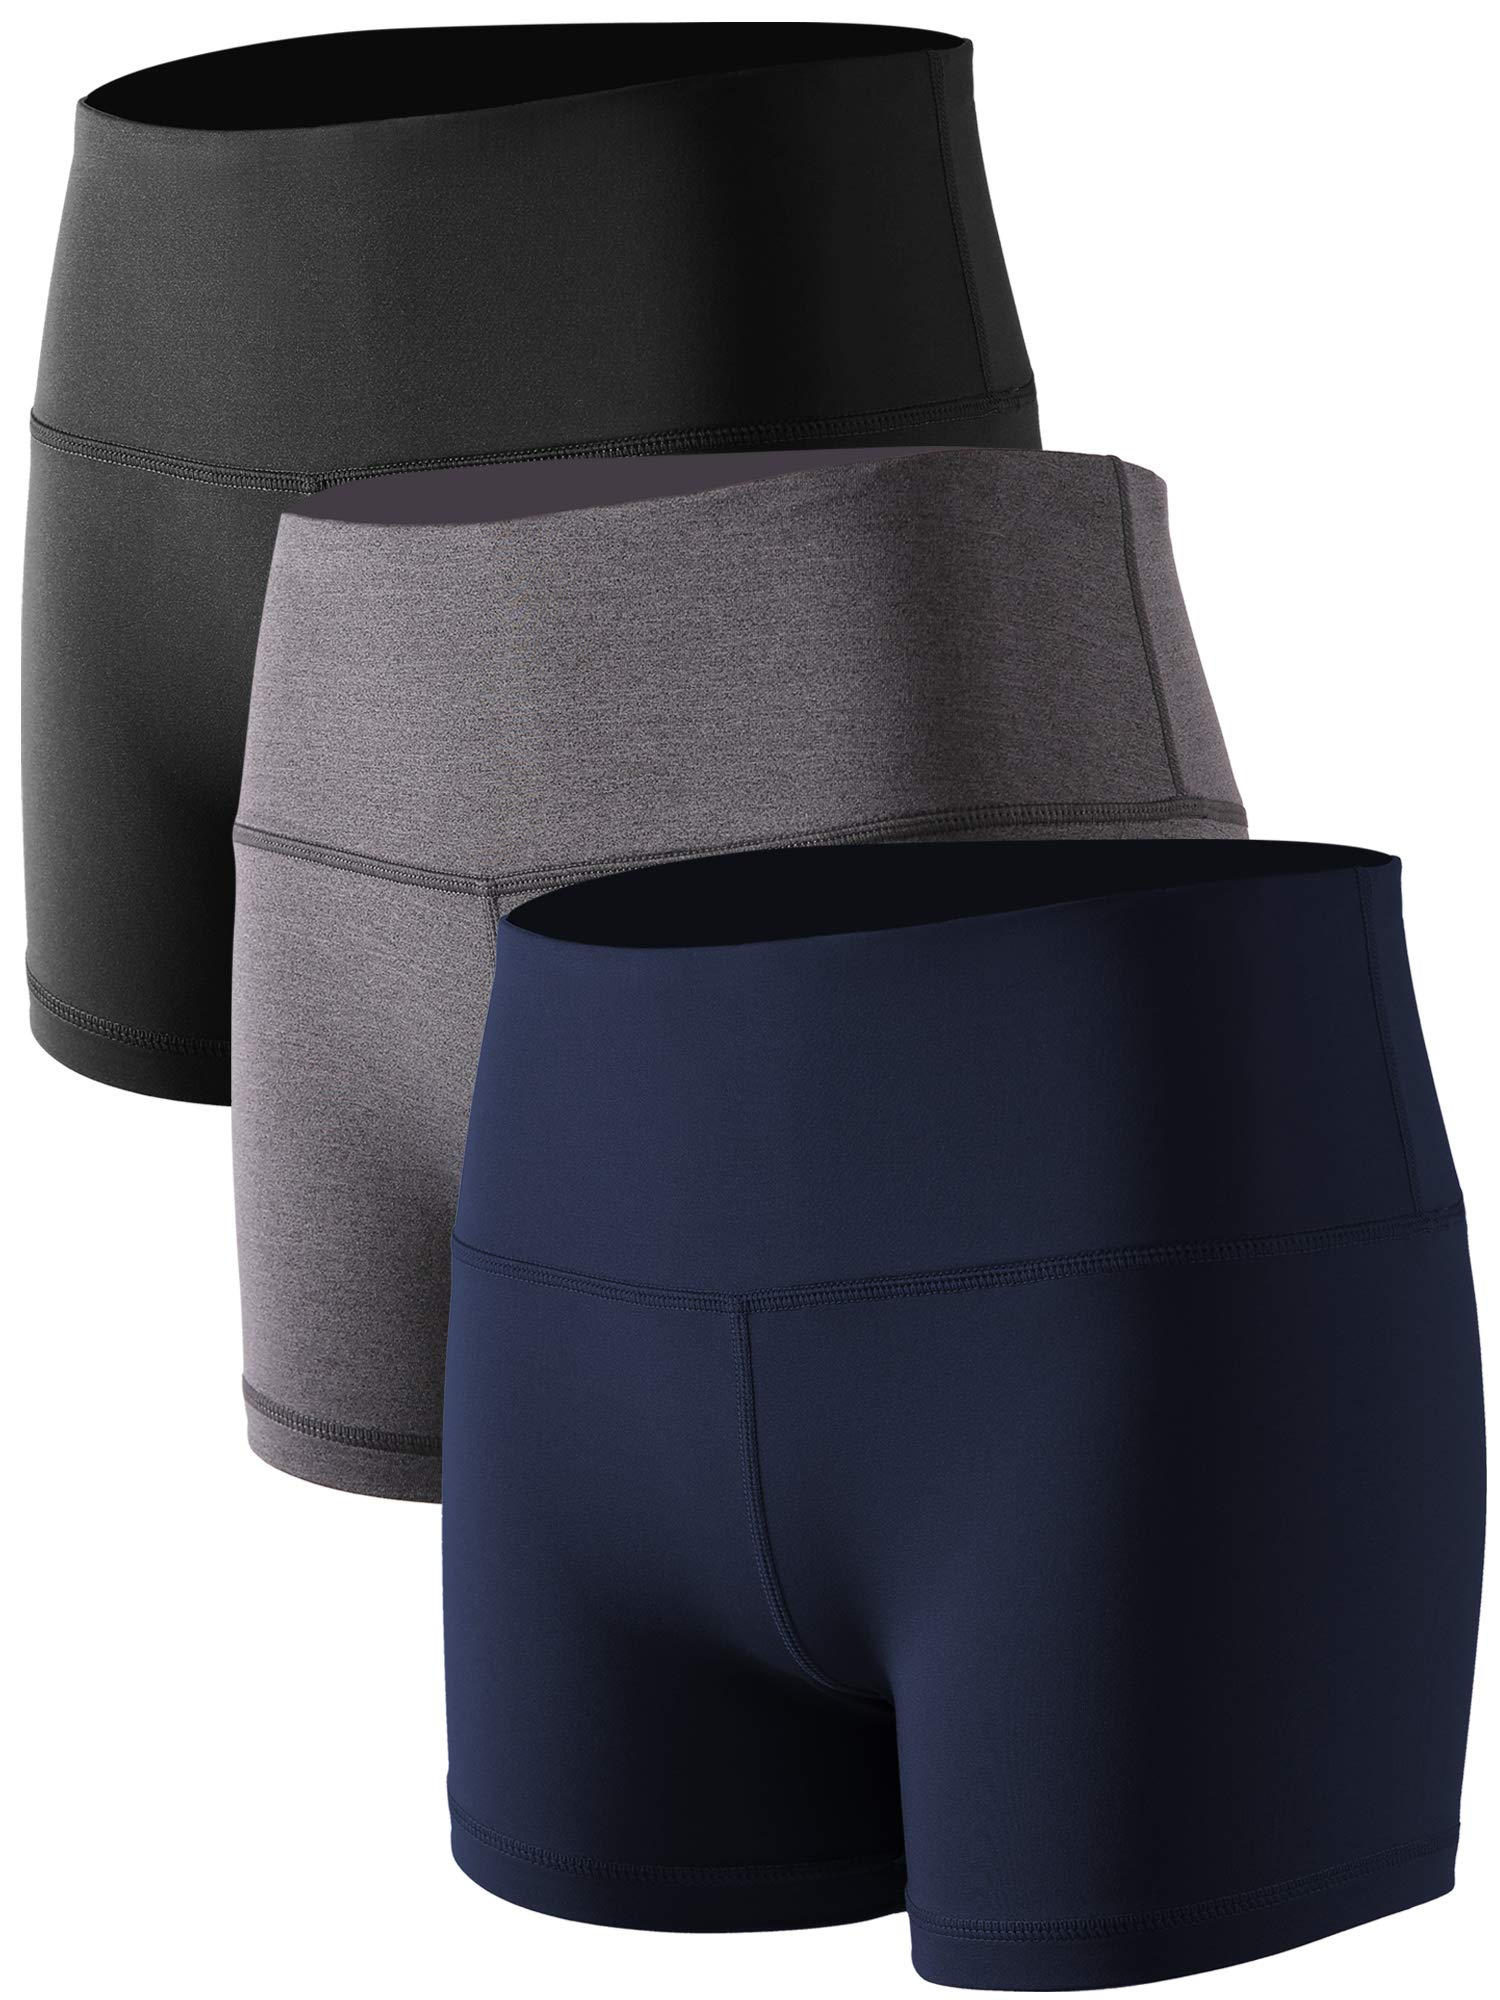 Cadmus Women's High Waist Athletic Sport Workout Shorts with Pocket,3 Pack,05,Black,Grey,Navy Blue,X-Large by Cadmus